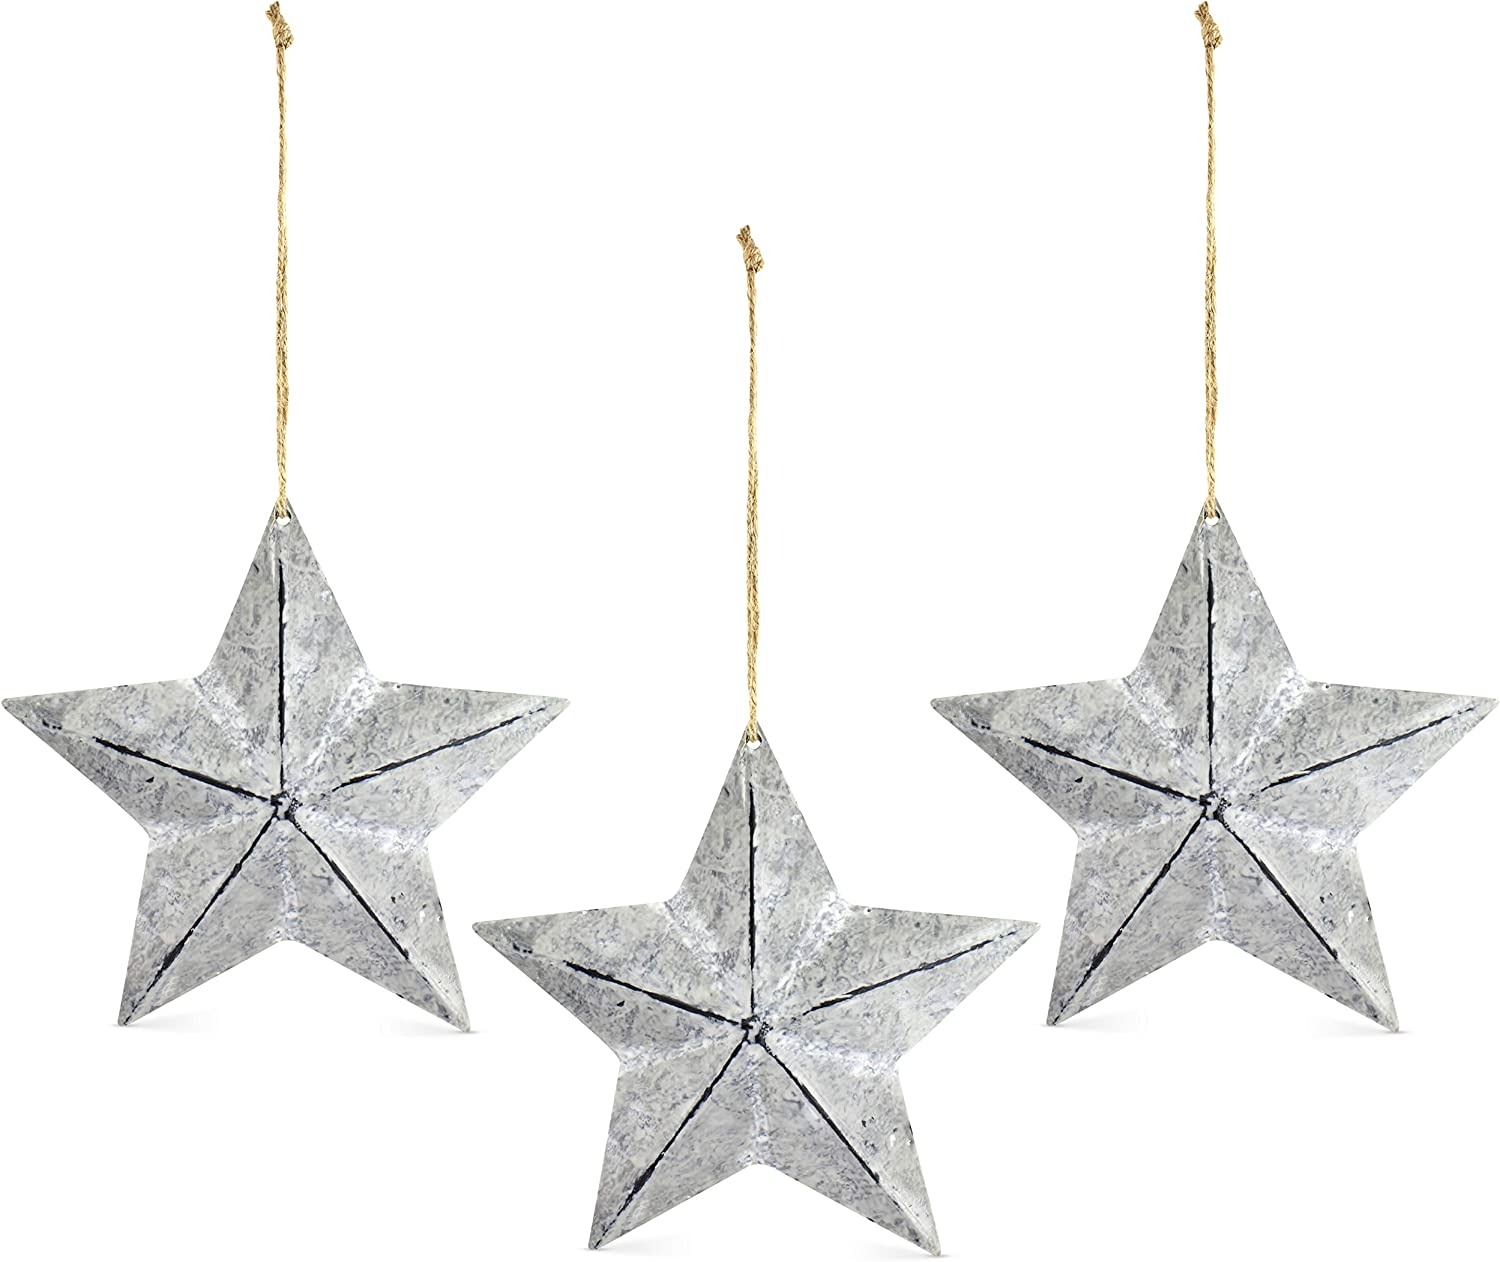 AuldHome Rustic Galvanized Star Ornaments (3-Pack); Distressed Star-Shaped Christmas Ornaments Suitable for Large Christmas Trees and Wreaths, Large 7.5 Inch Diameter